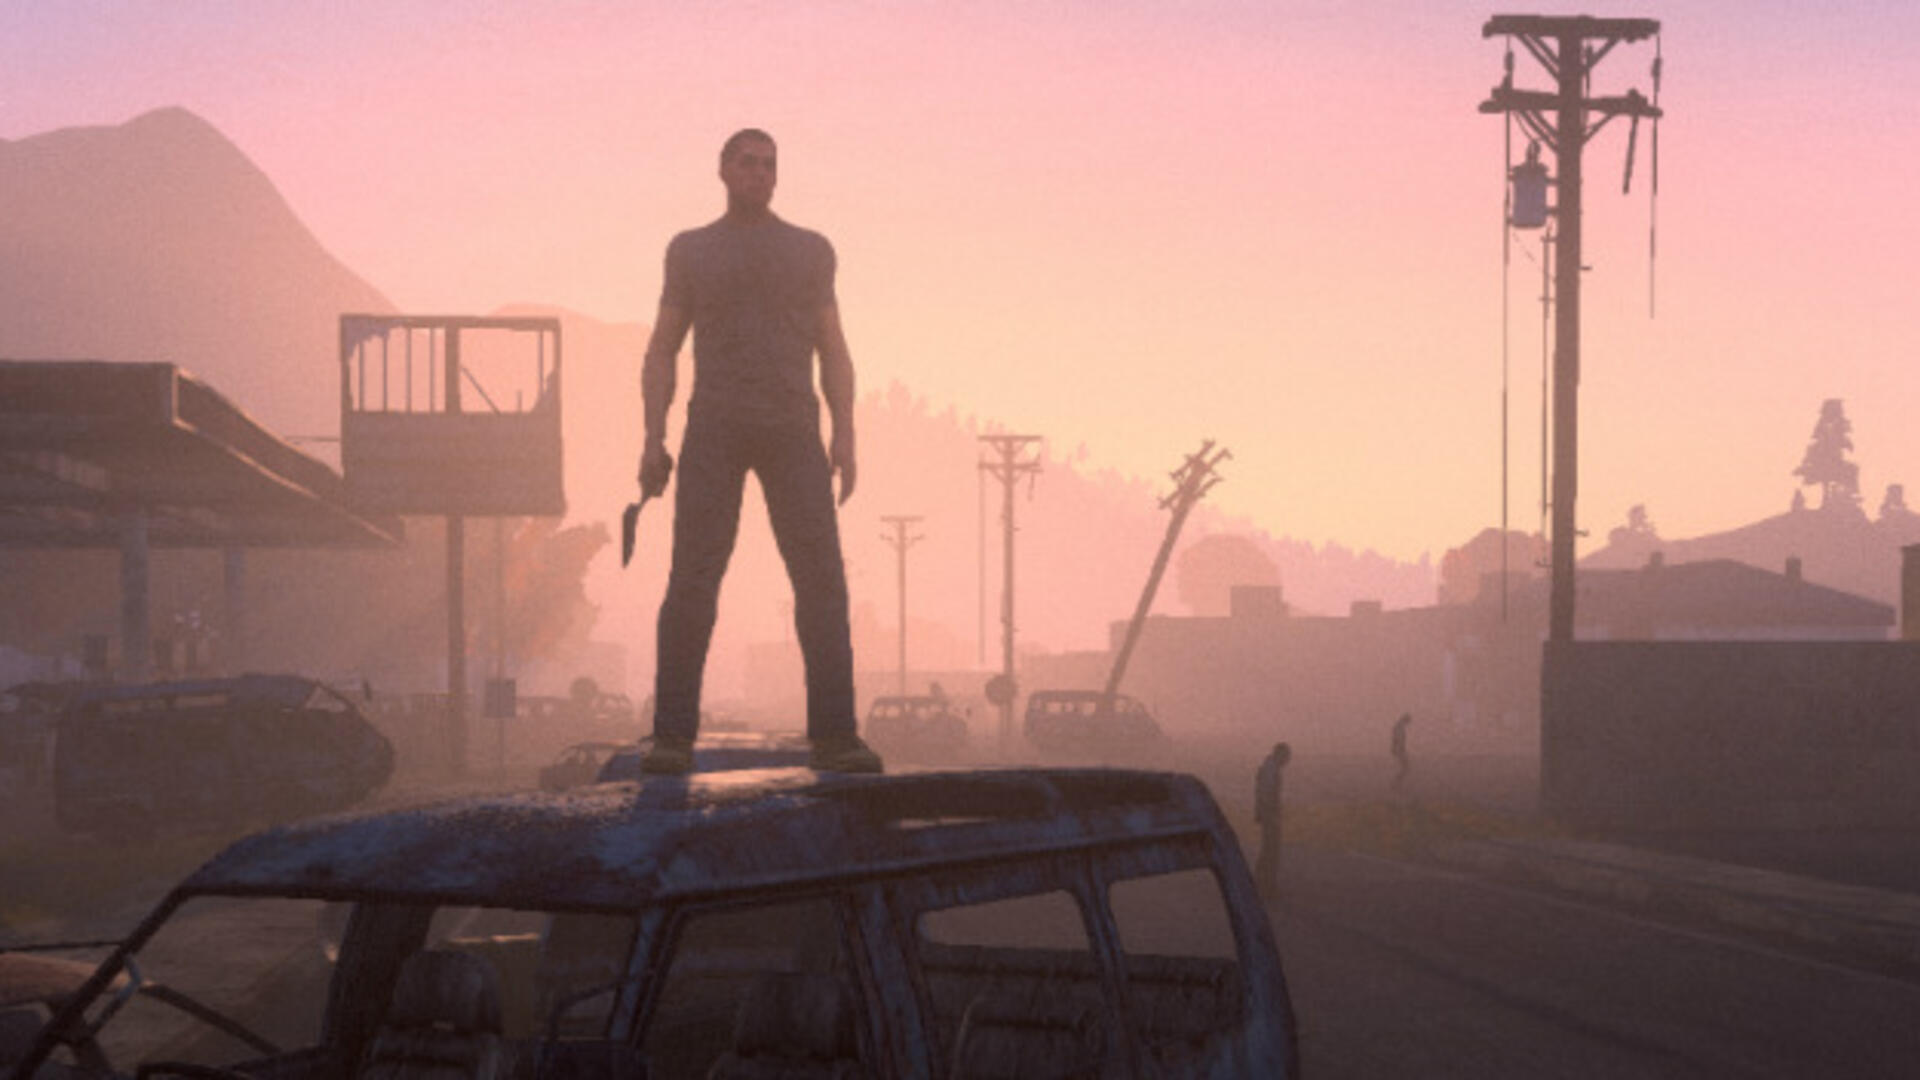 H1Z1 PS4 Servers Taken Down in Preparation for Full Launch